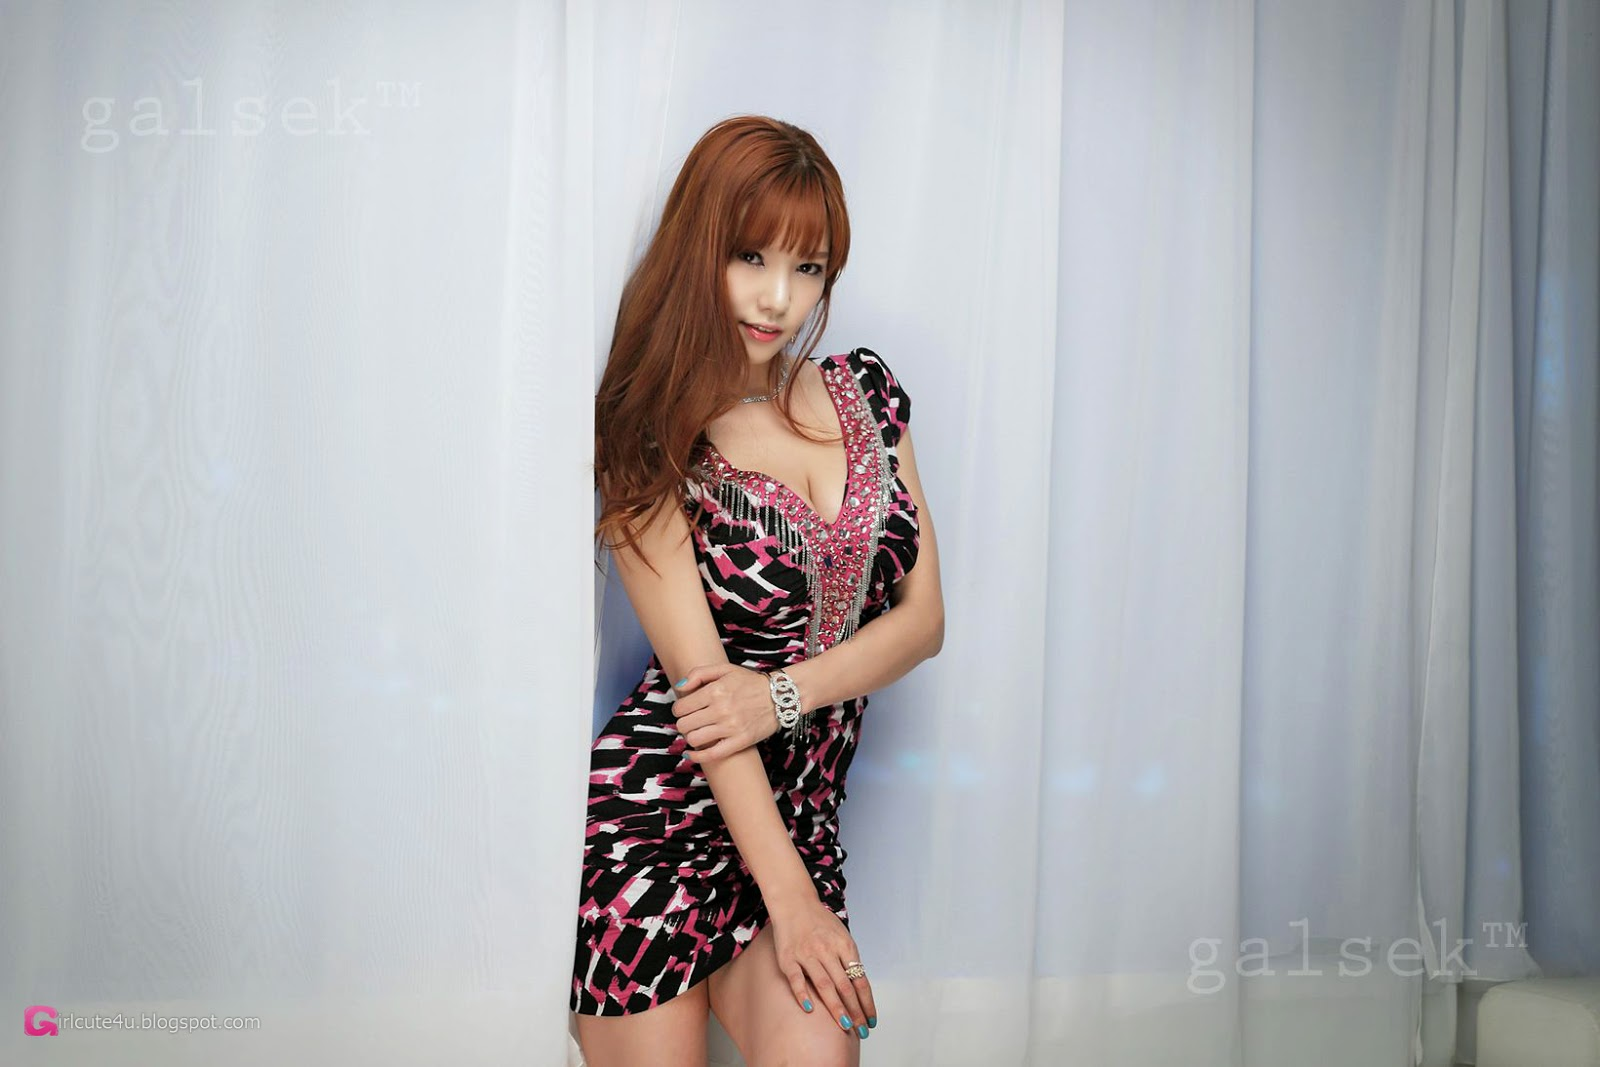 1 Stunning Han Min Young in 3 Studio Sets - very cute asian girl-girlcute4u.blogspot.com